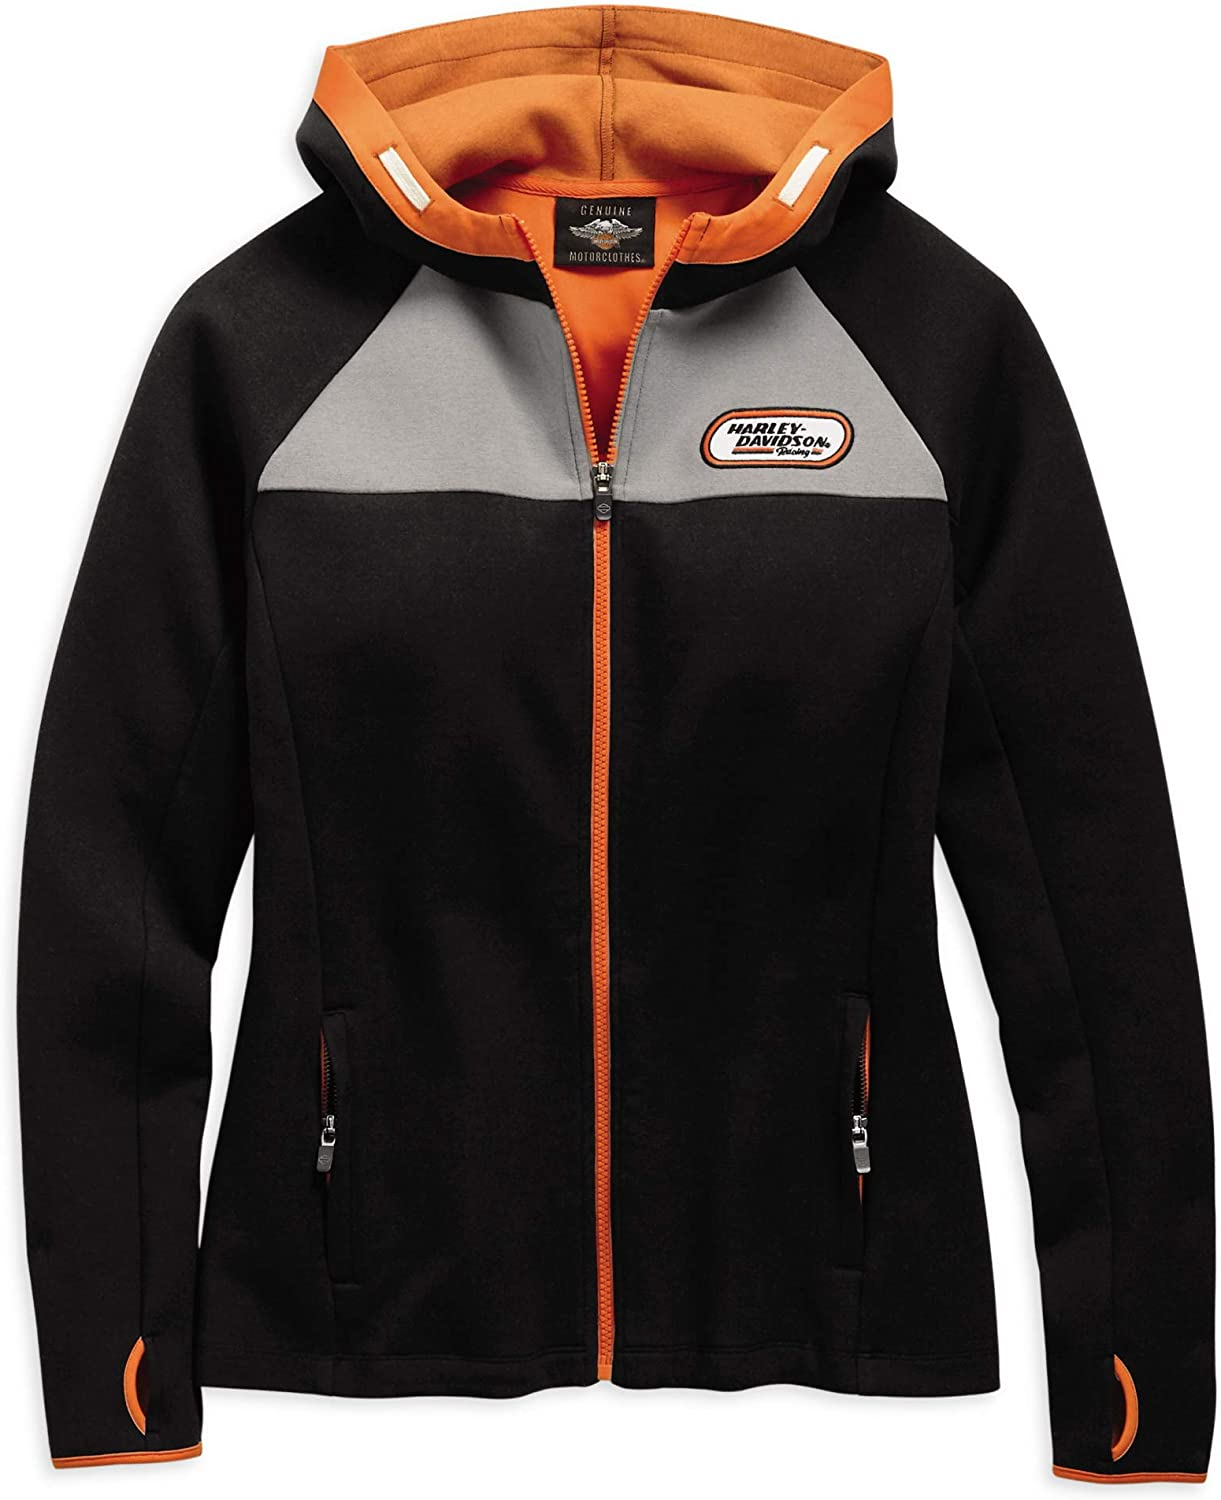 Harley-Davidson Women's H-D Racing Full-